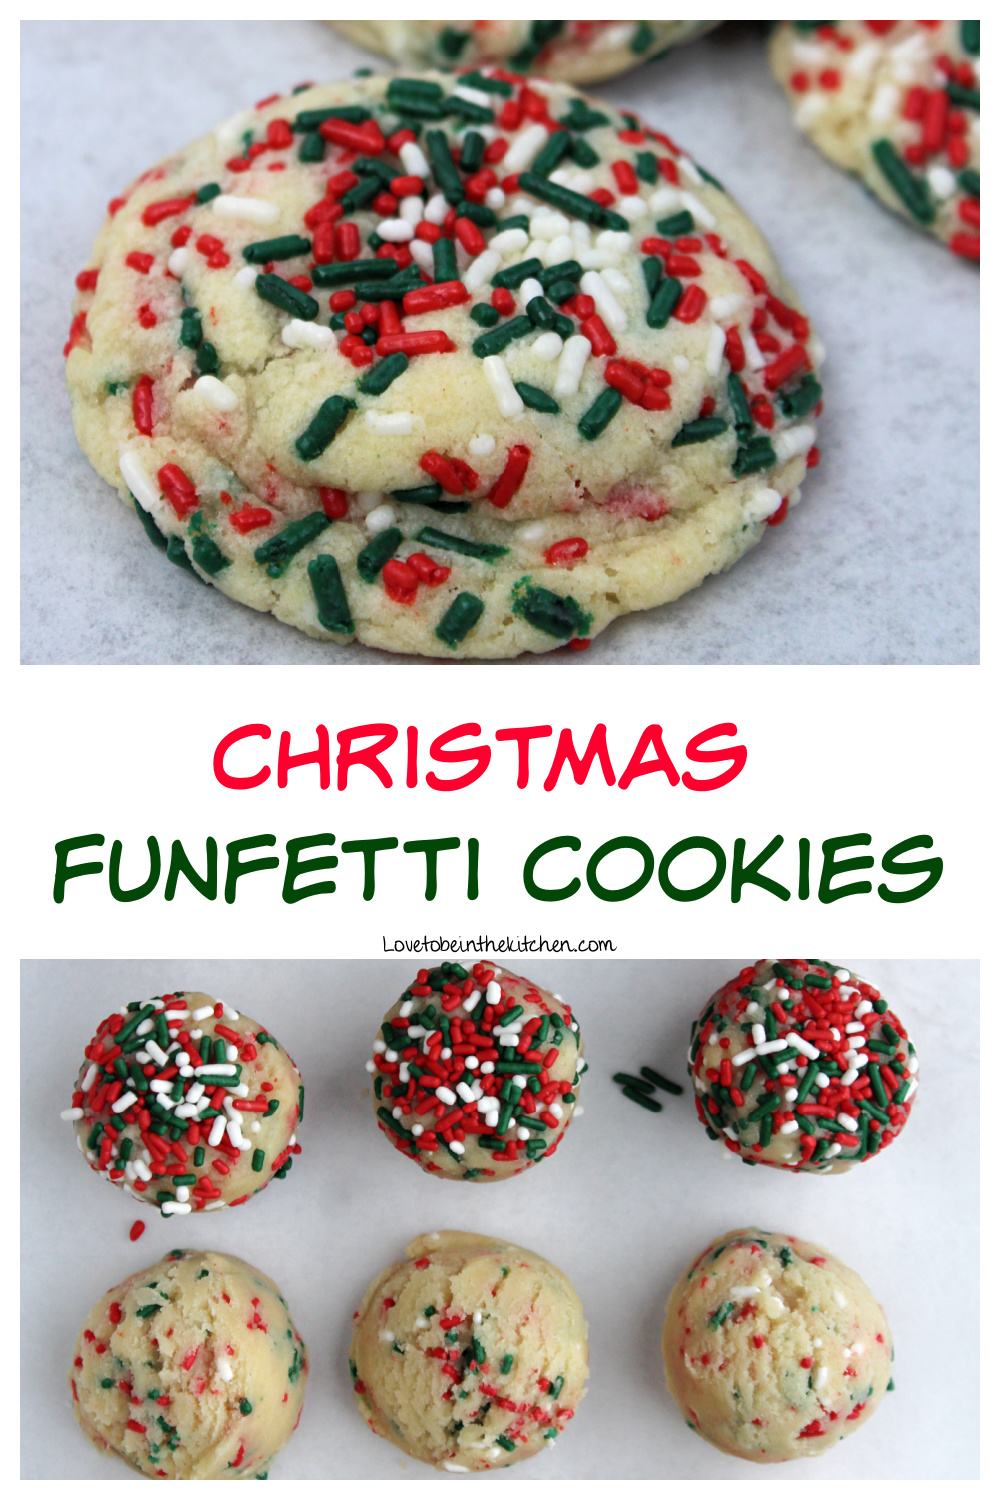 Christmas Funfetti Cookies collage